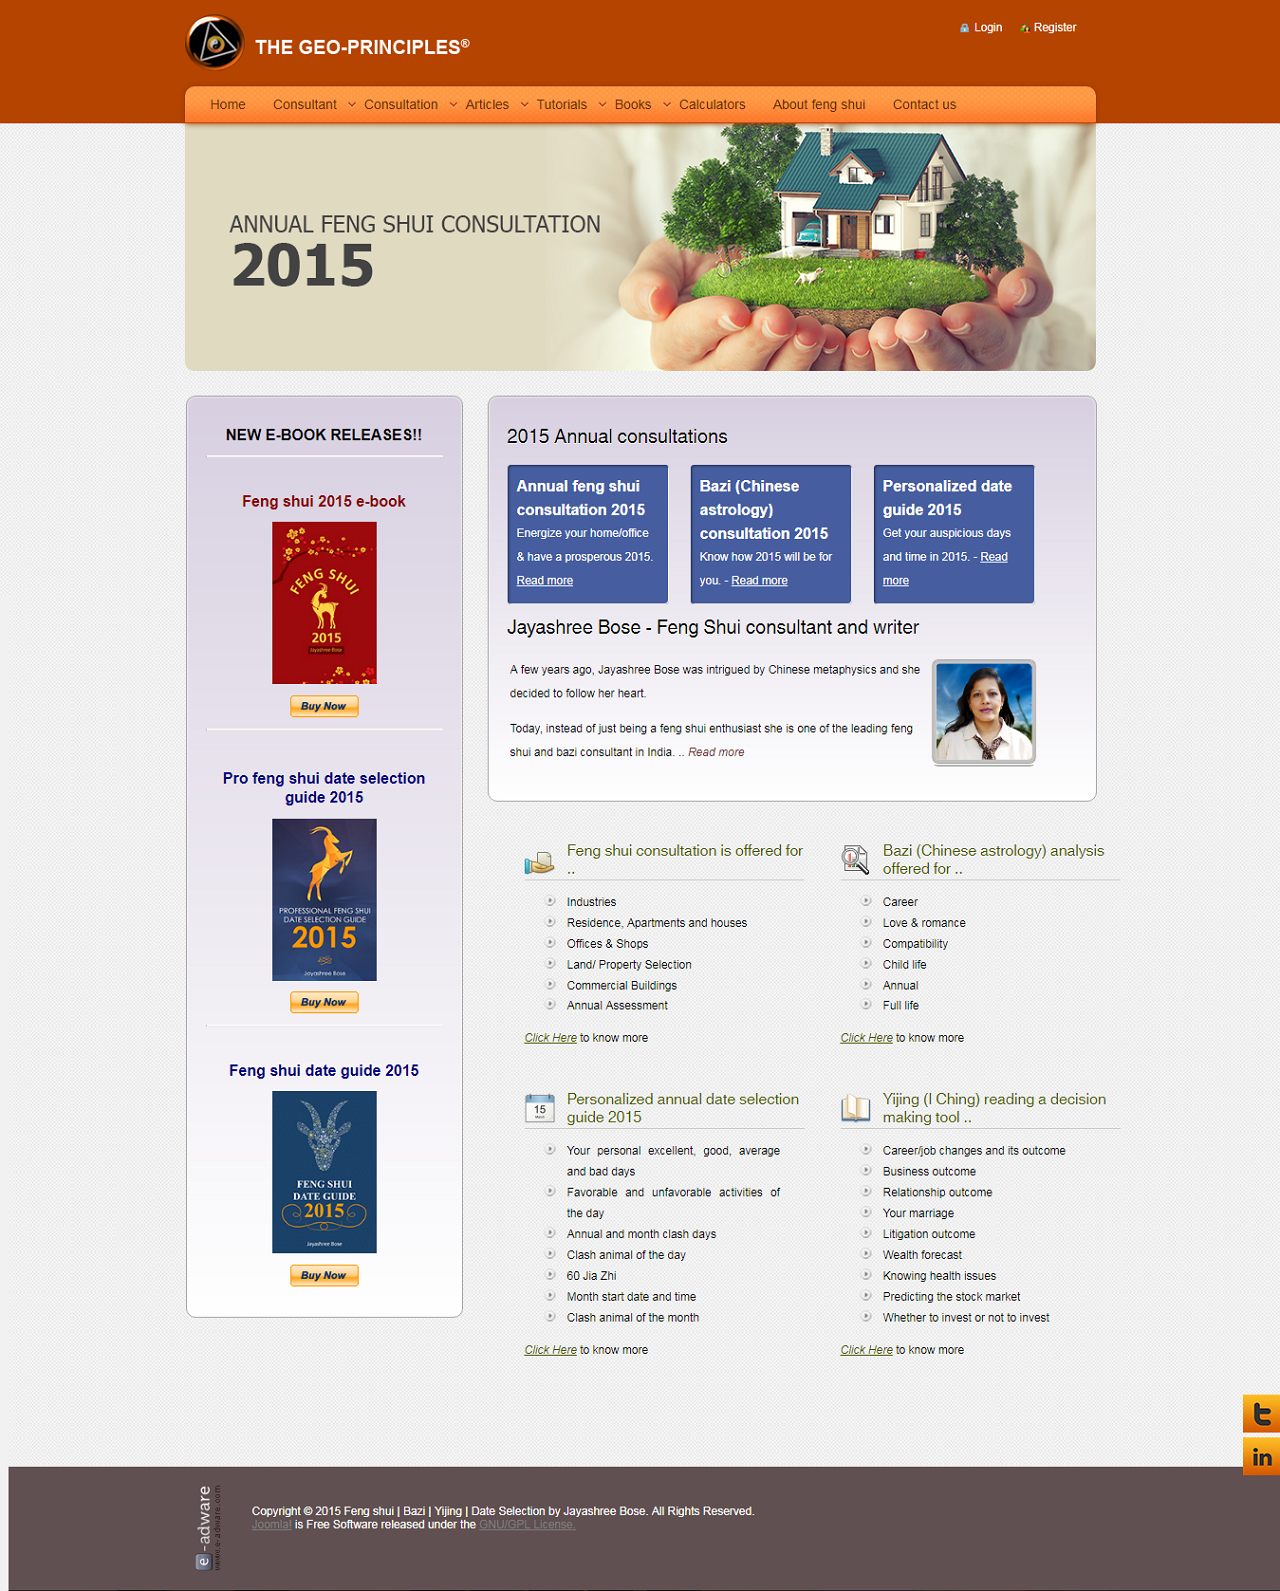 The Geo-Principles Website 2015